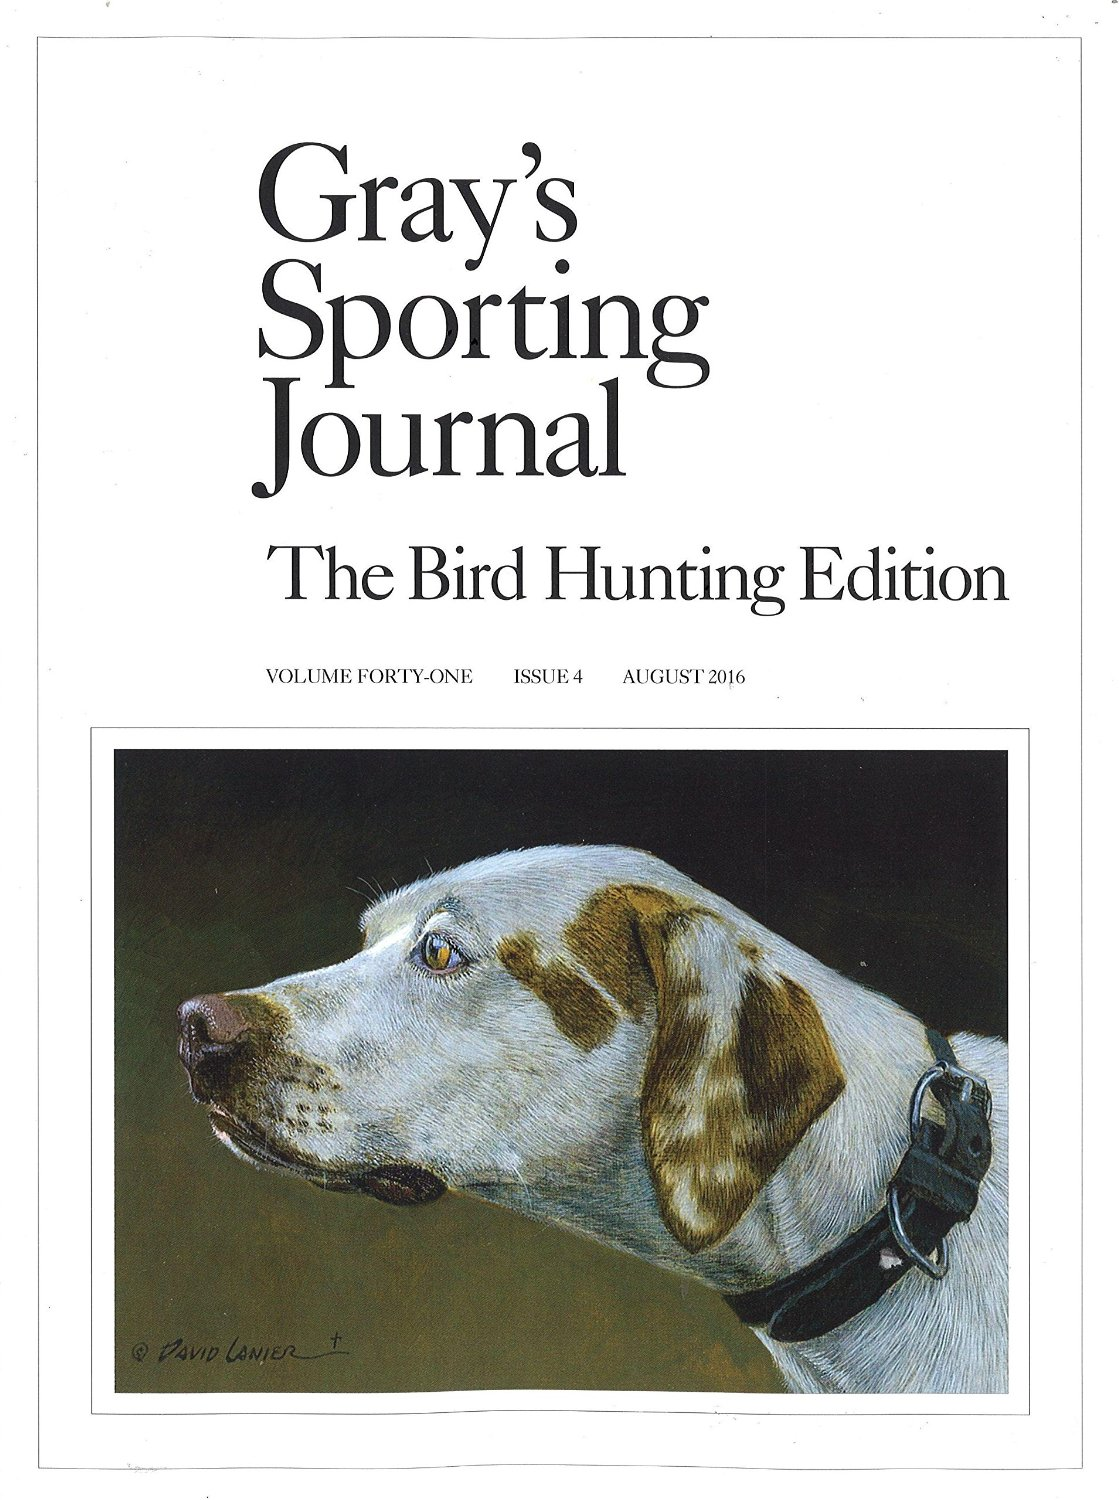 Grays Sporting Journal Magazine Subscription